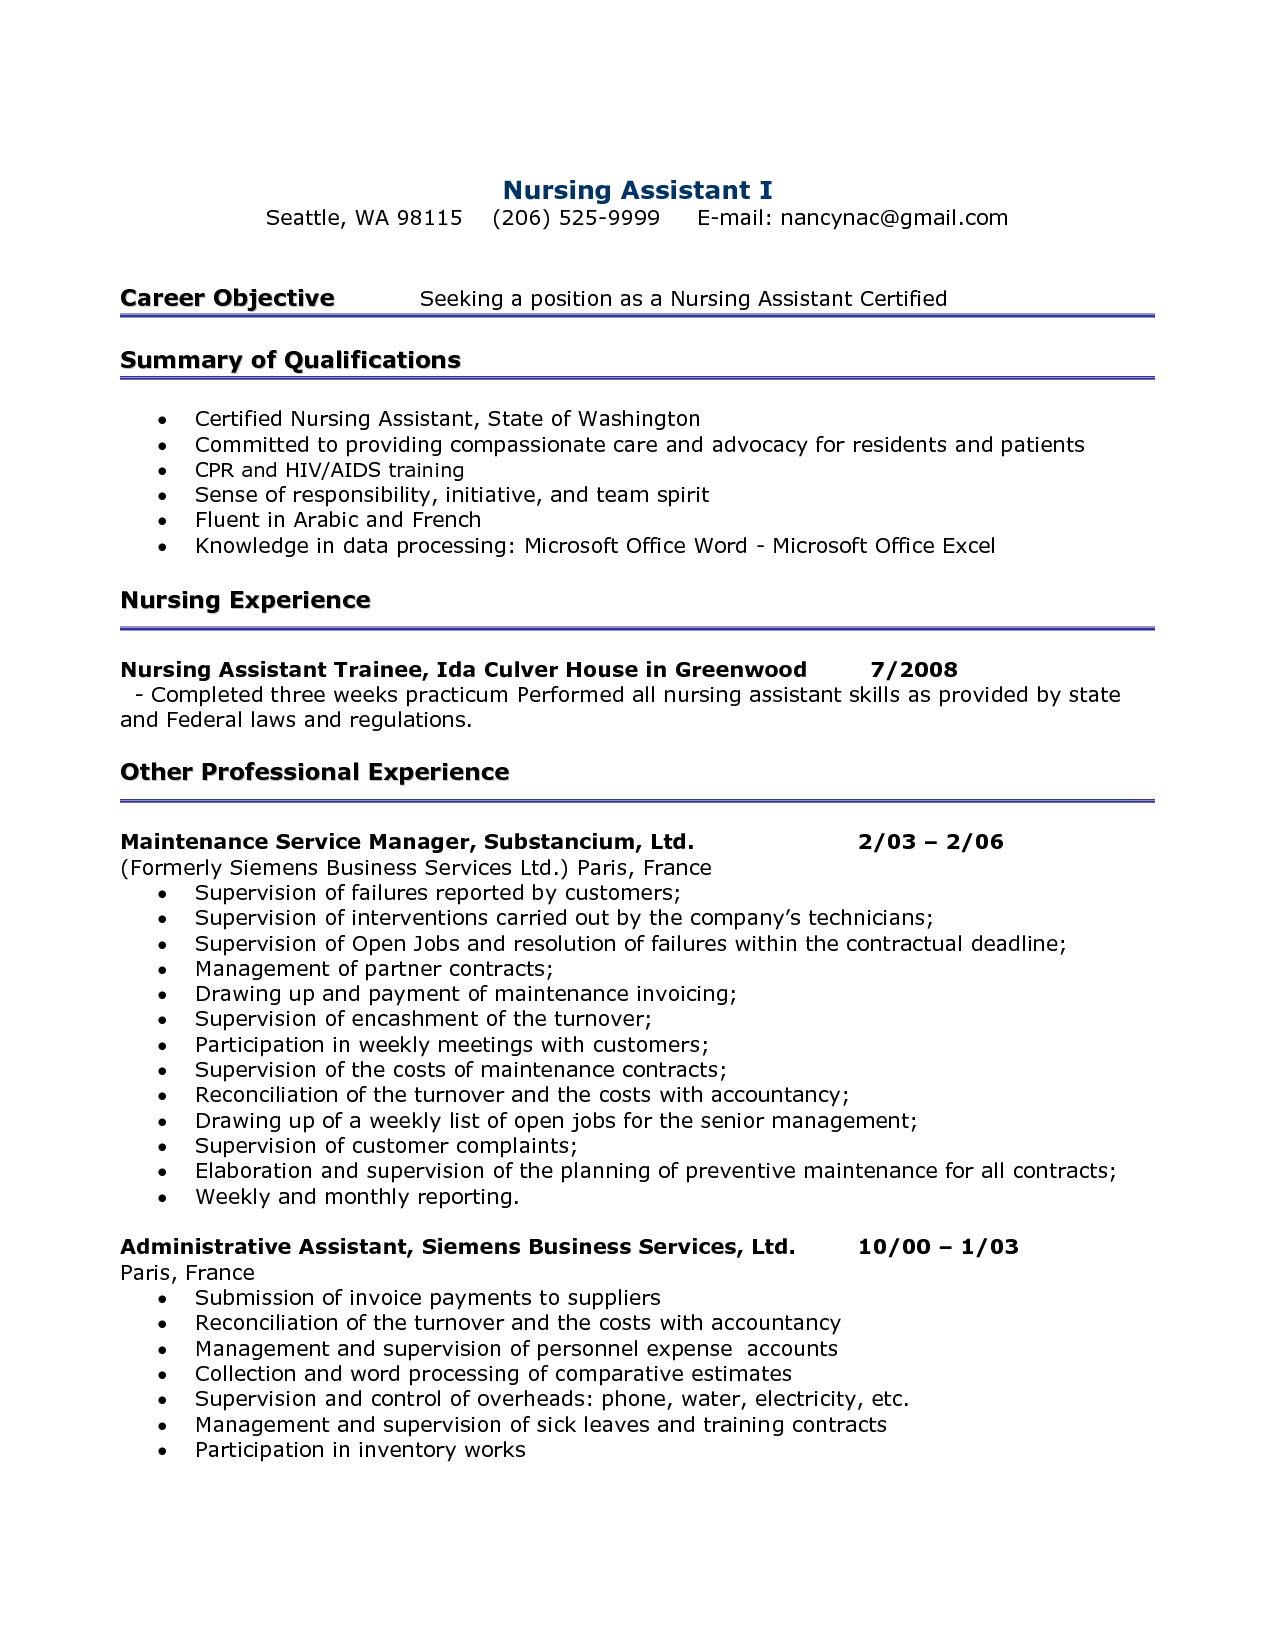 Summary Statement Resume Examples Certified Nursing Assistant Resume  Httpwwwresumecareer